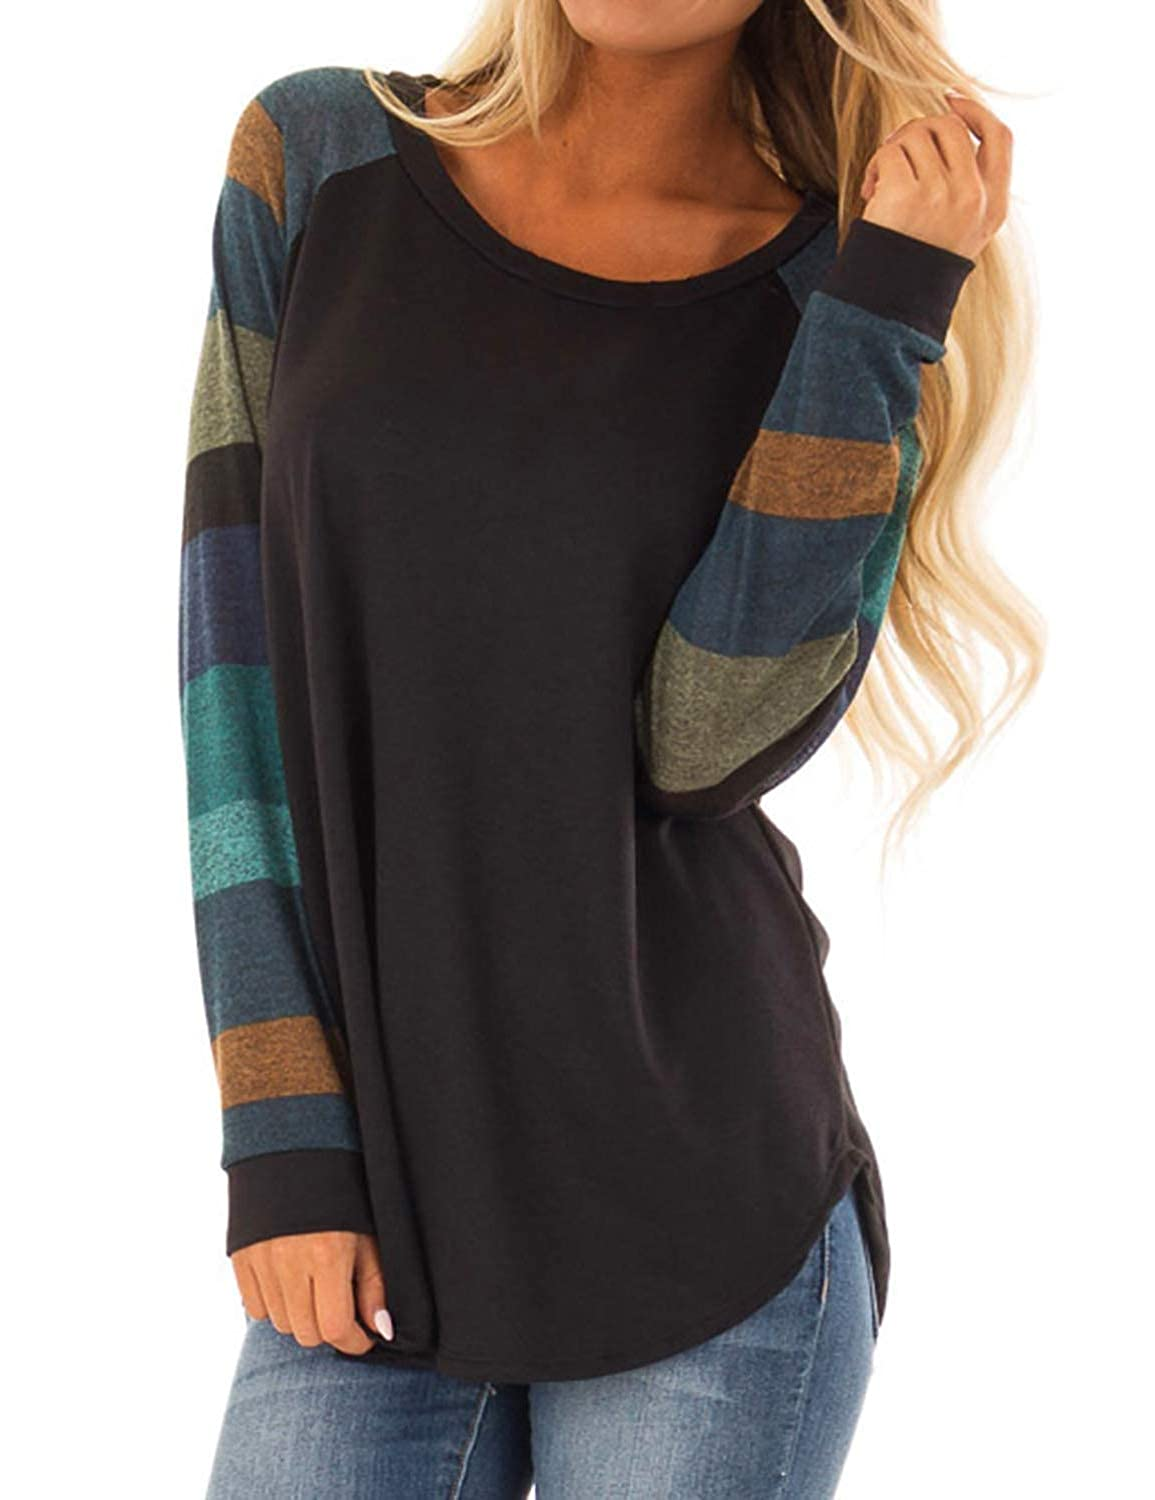 6947f968aef HMei Women Casual Shirts Color Block Long Sleeve Striped Loose Tunic  Sweatshirts Top HM-T-9042